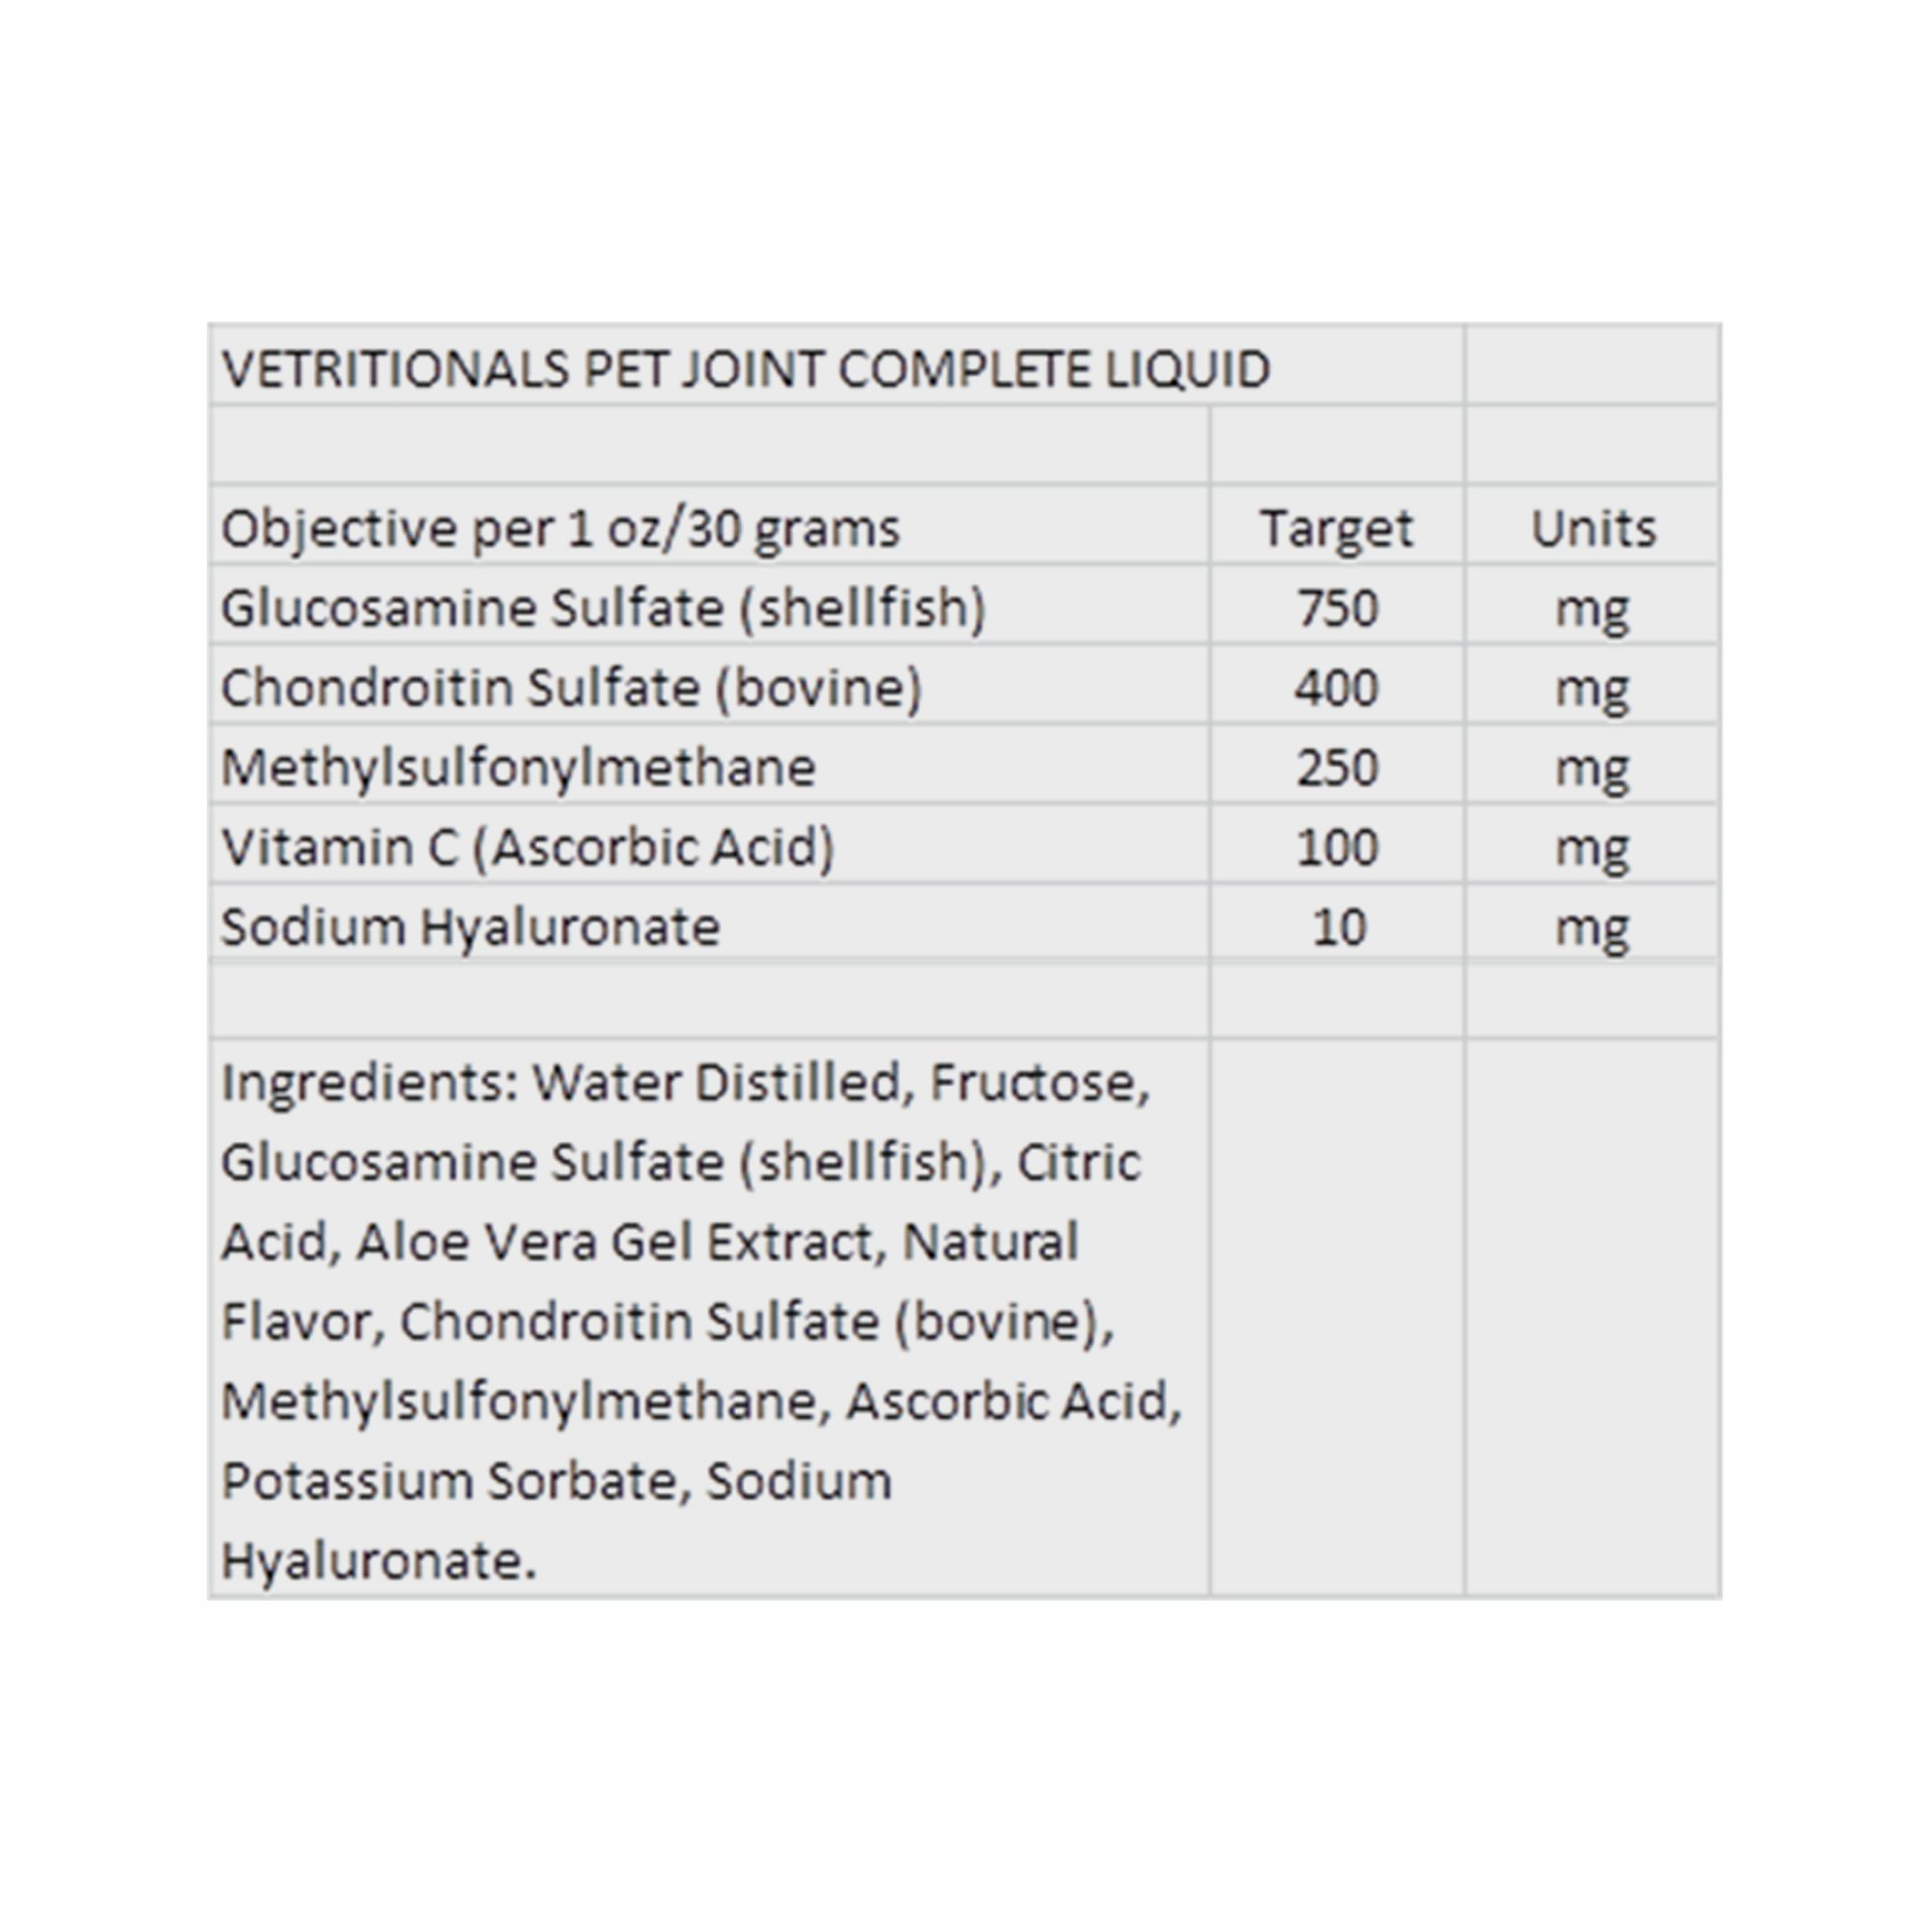 Vetritionals Joint Complete